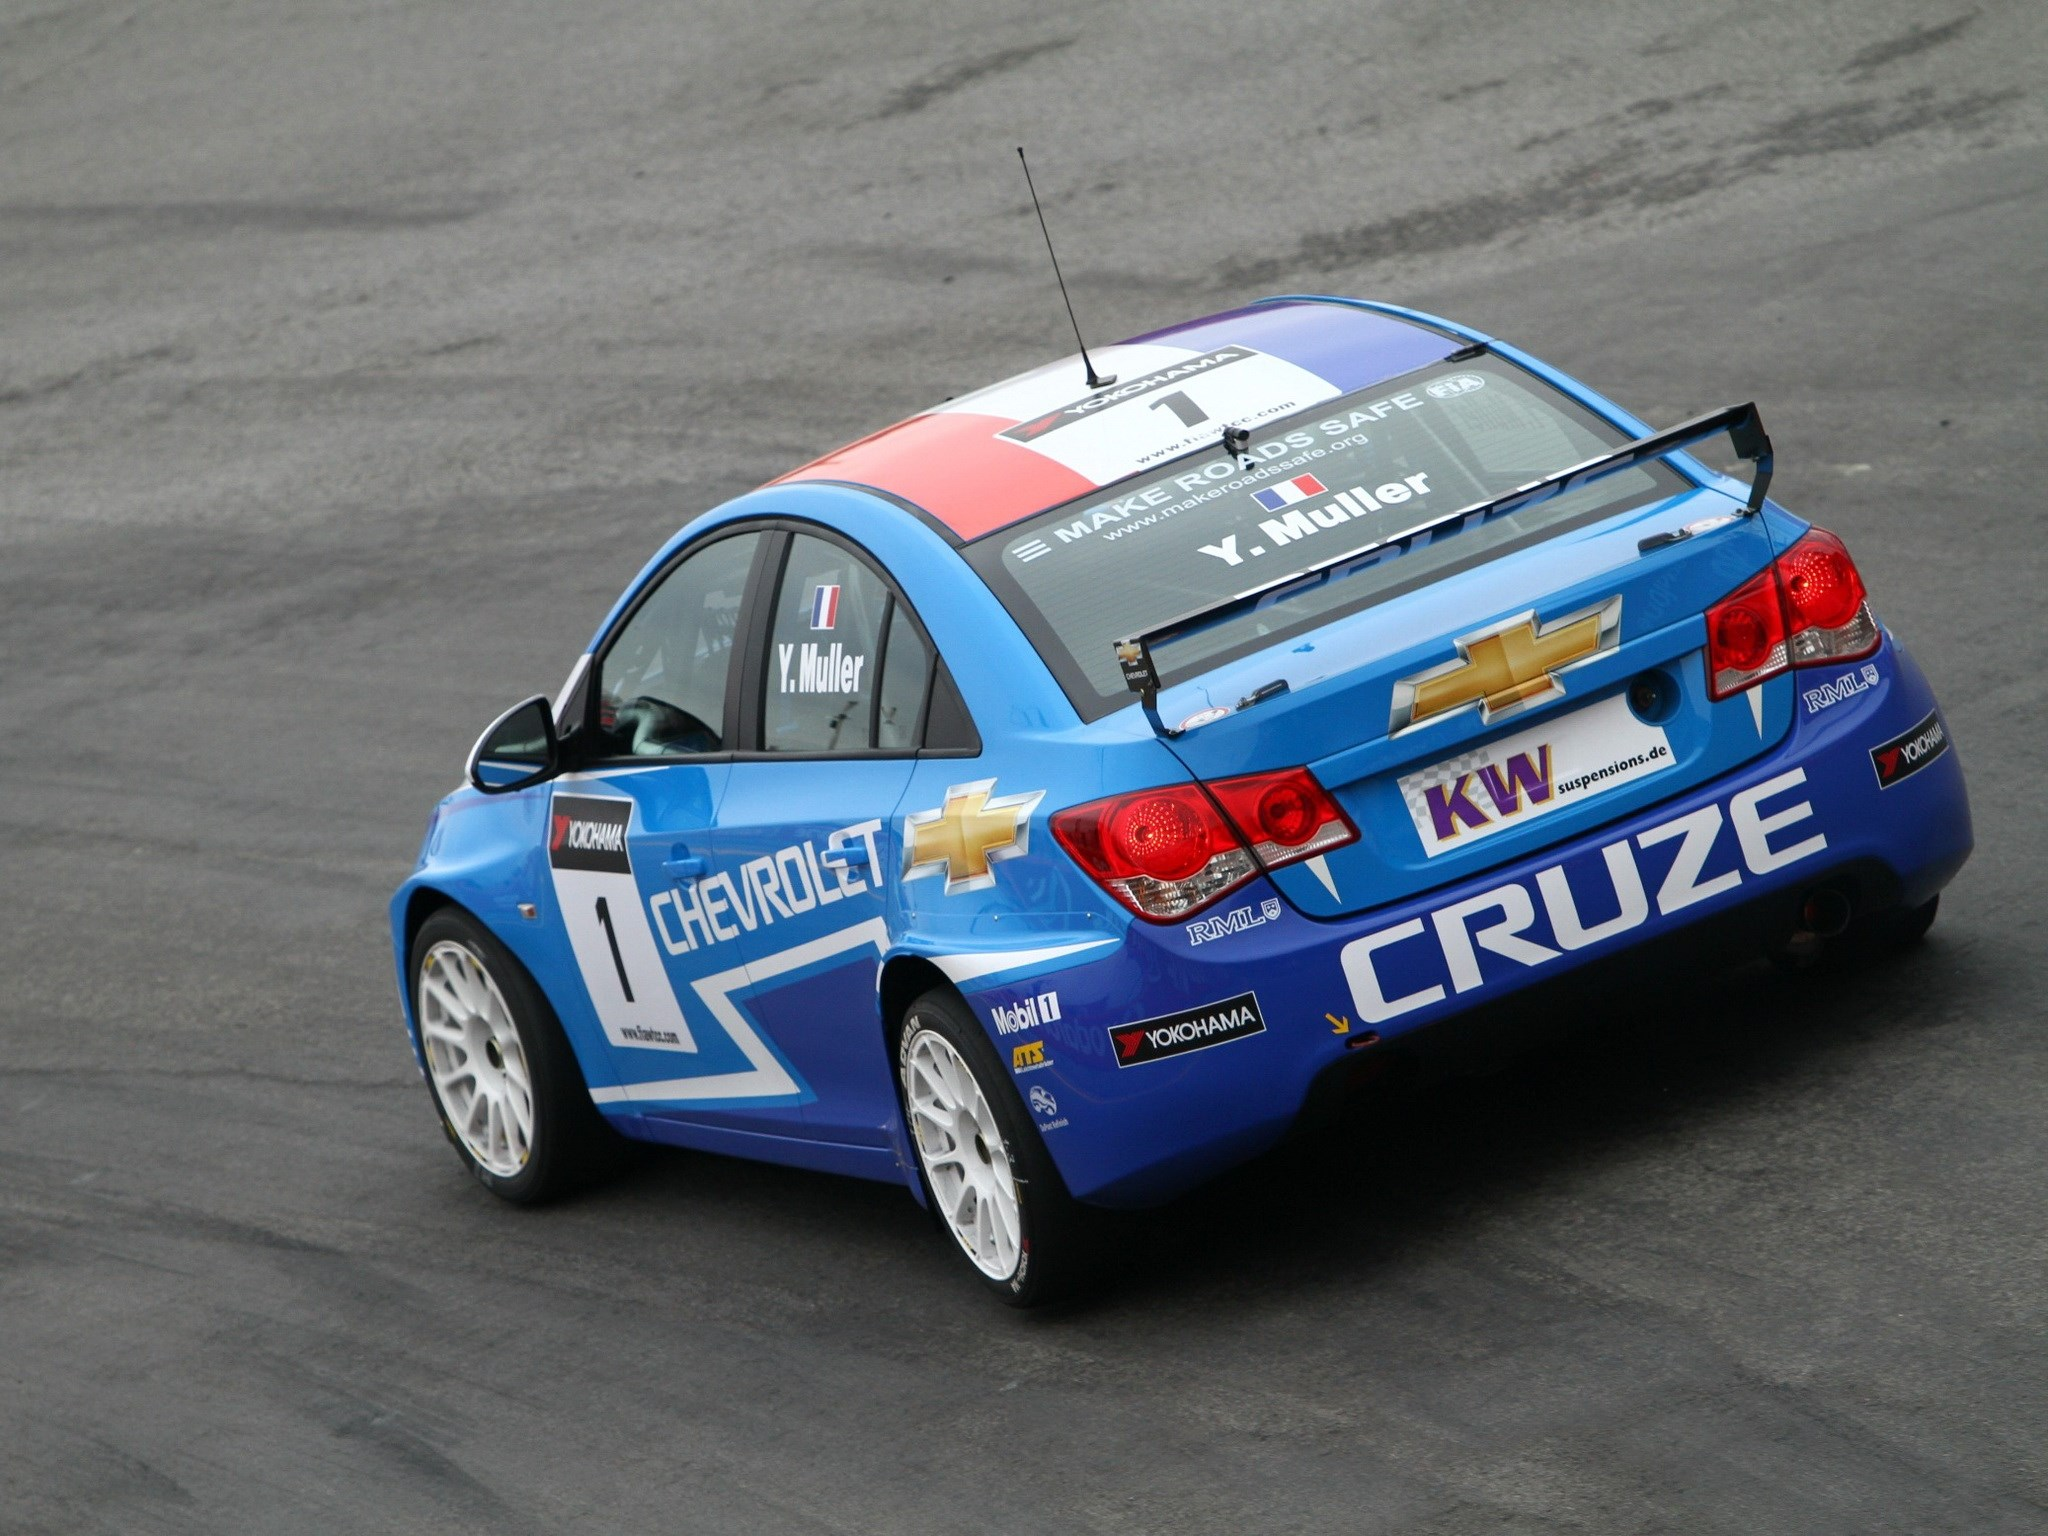 2048x1536 - WTCC Racing Wallpapers 31